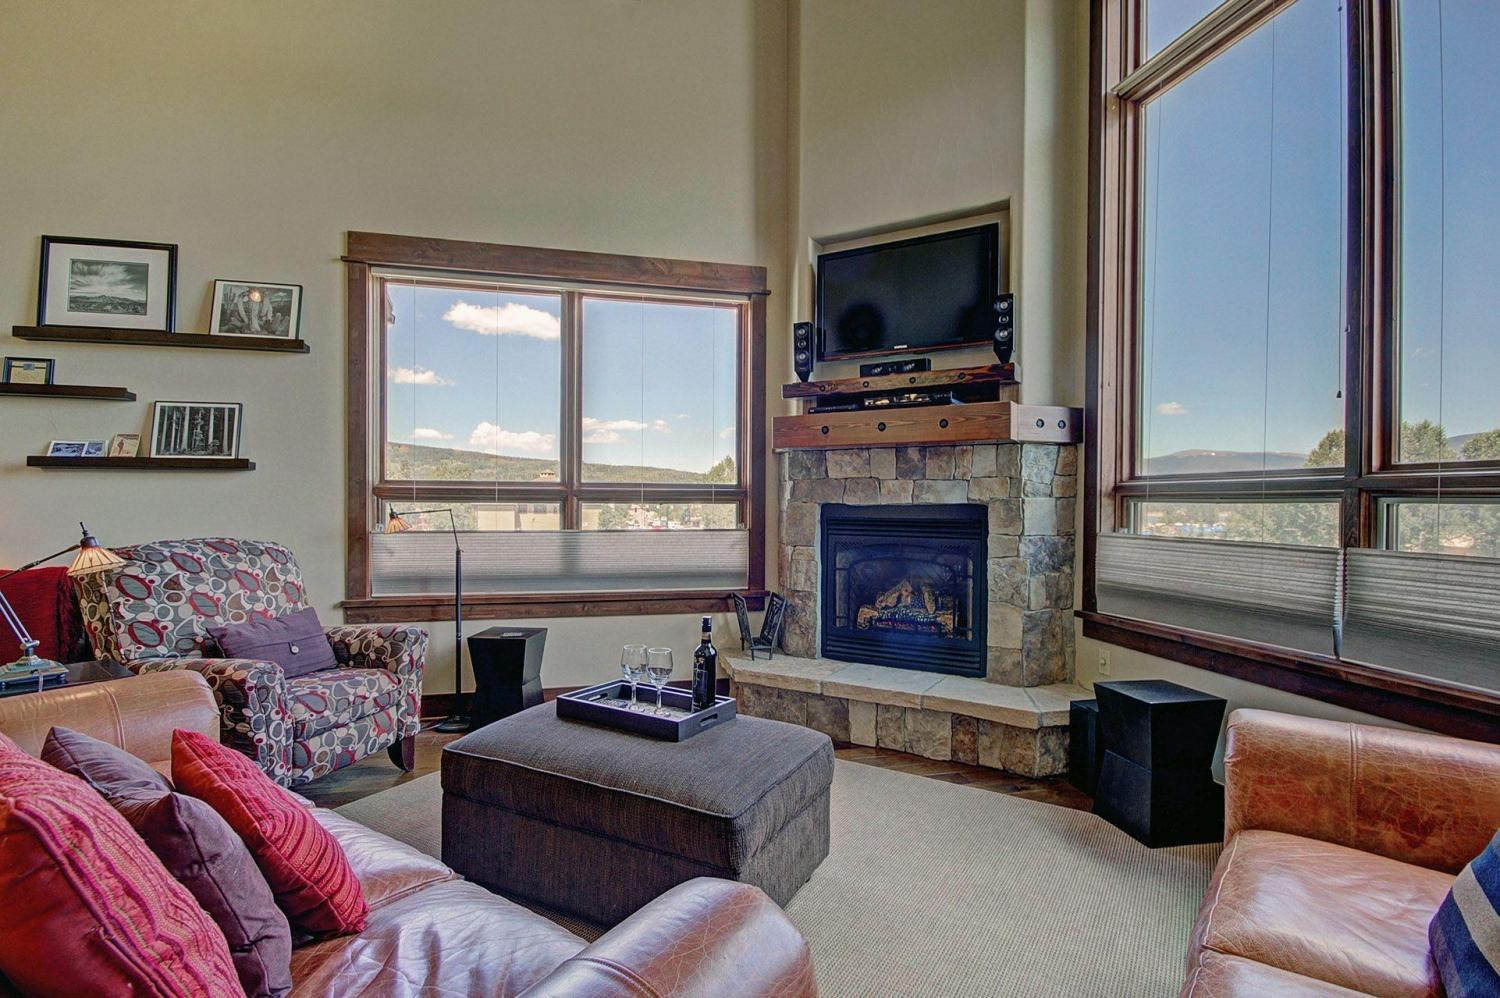 B201 WaterTower Place 3BR 3BA